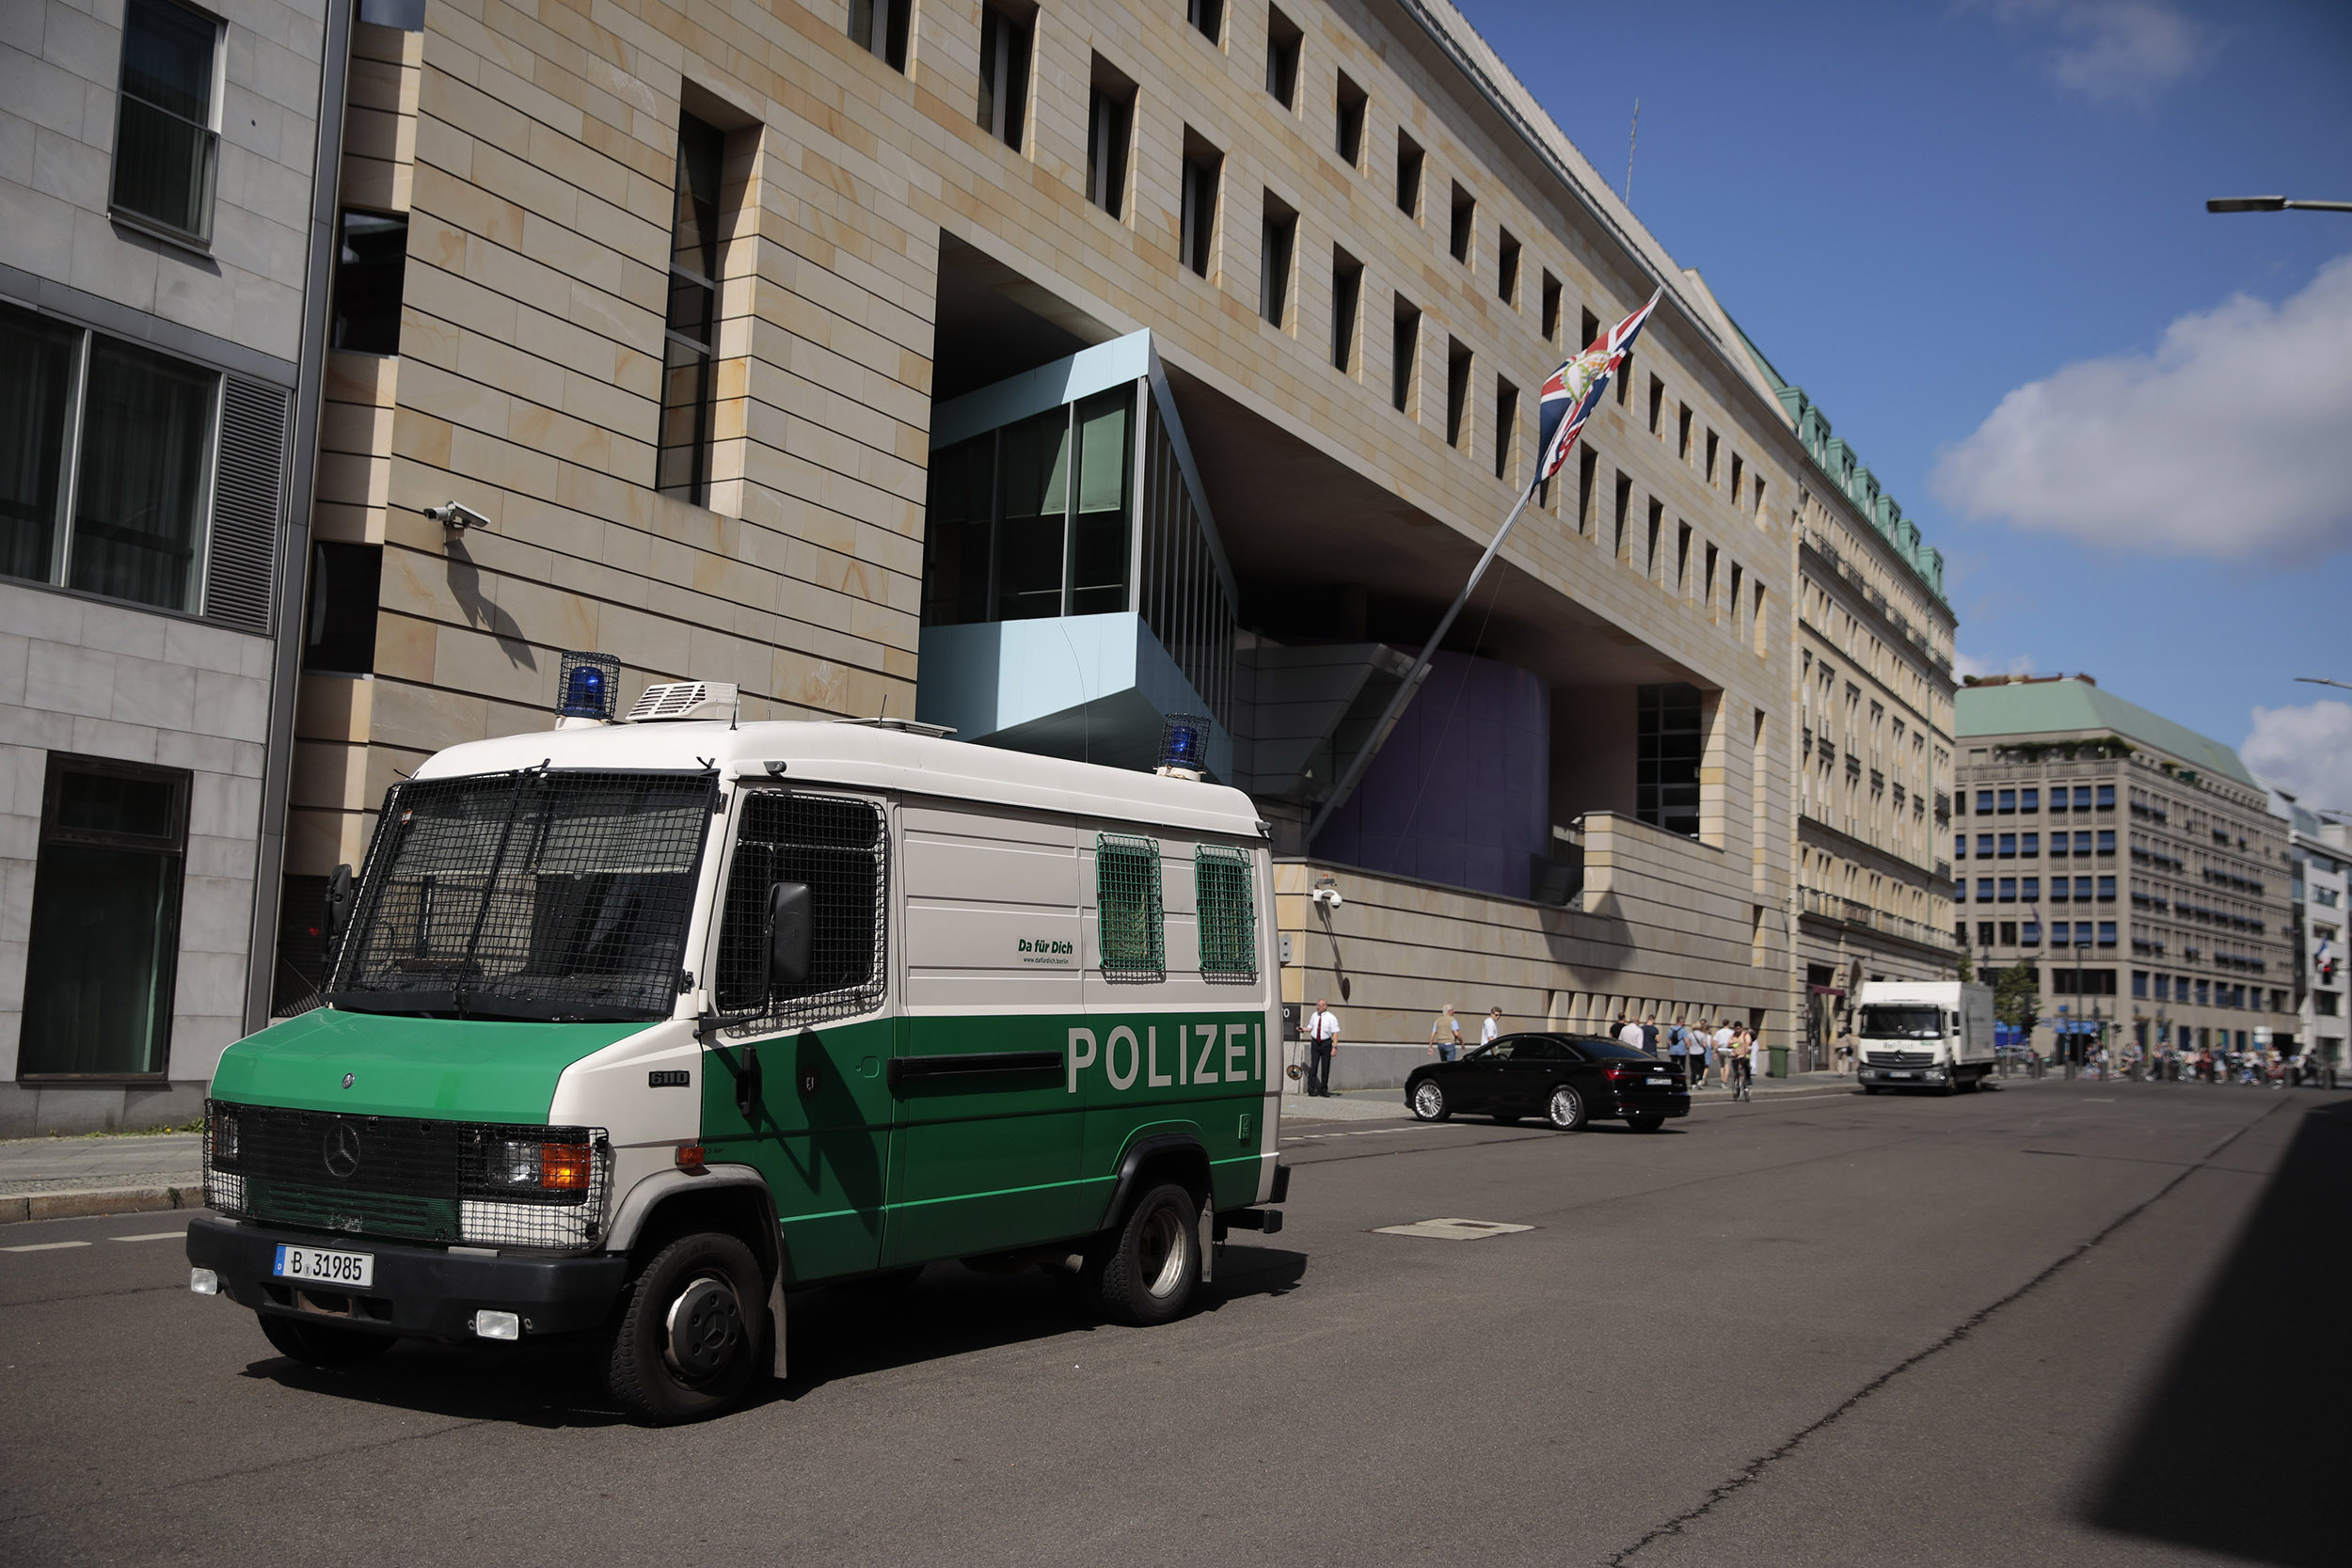 British Embassy worker suspected of spying for Russia arrested in Berlin